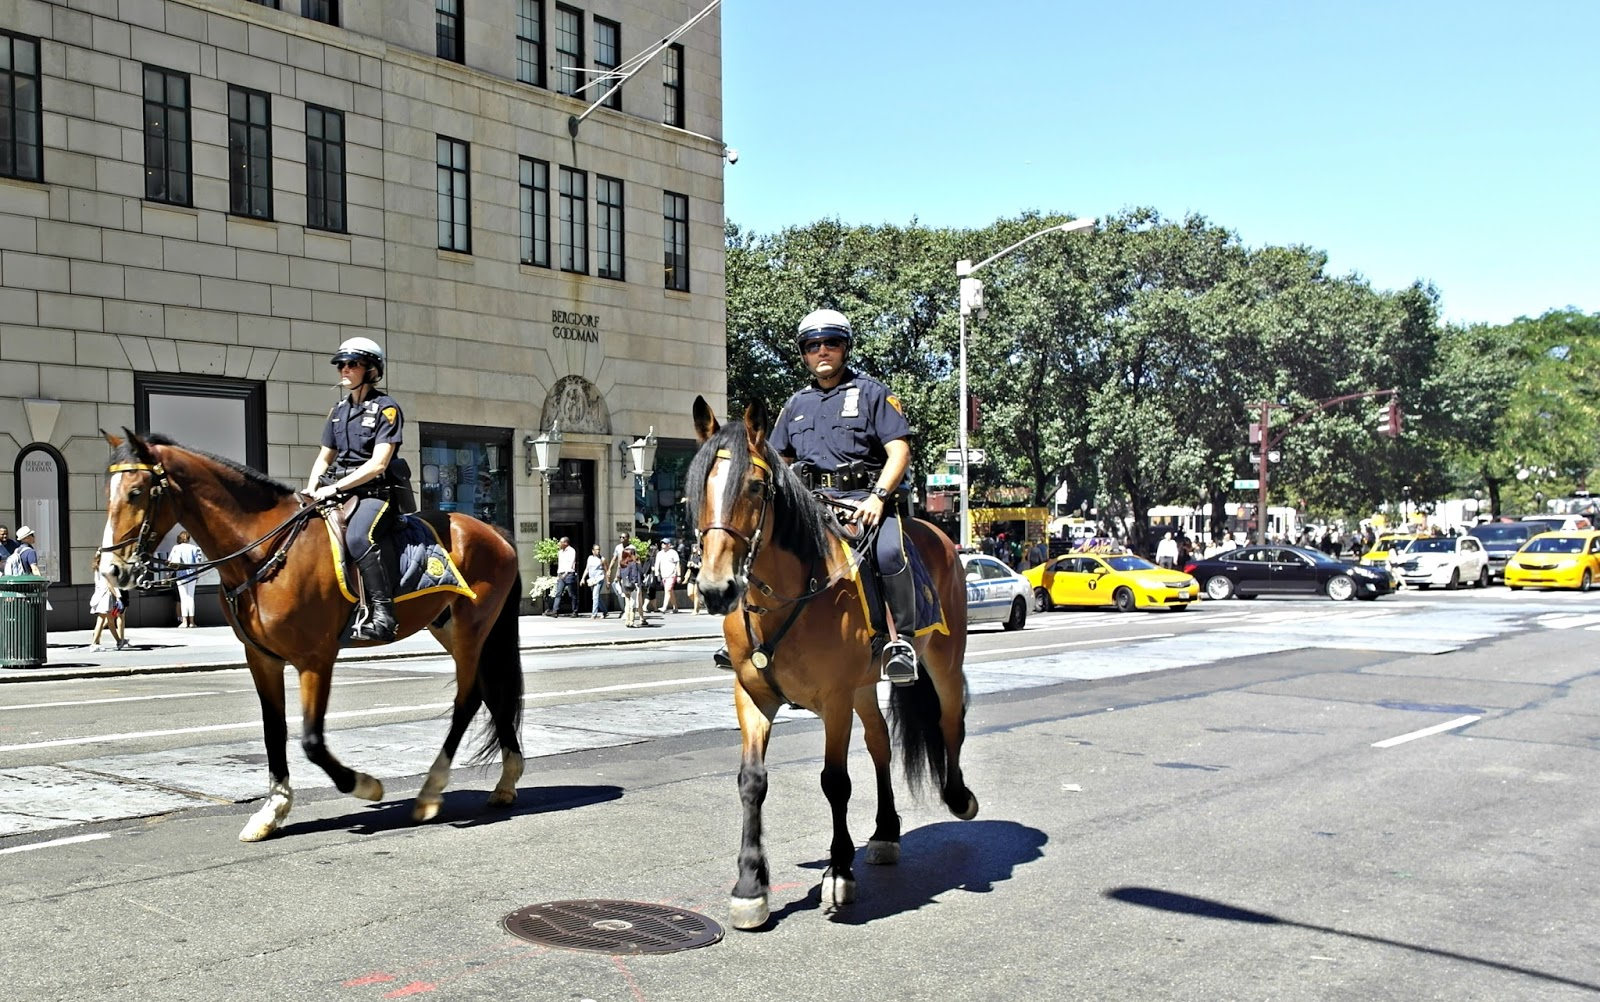 new york police officers on horses